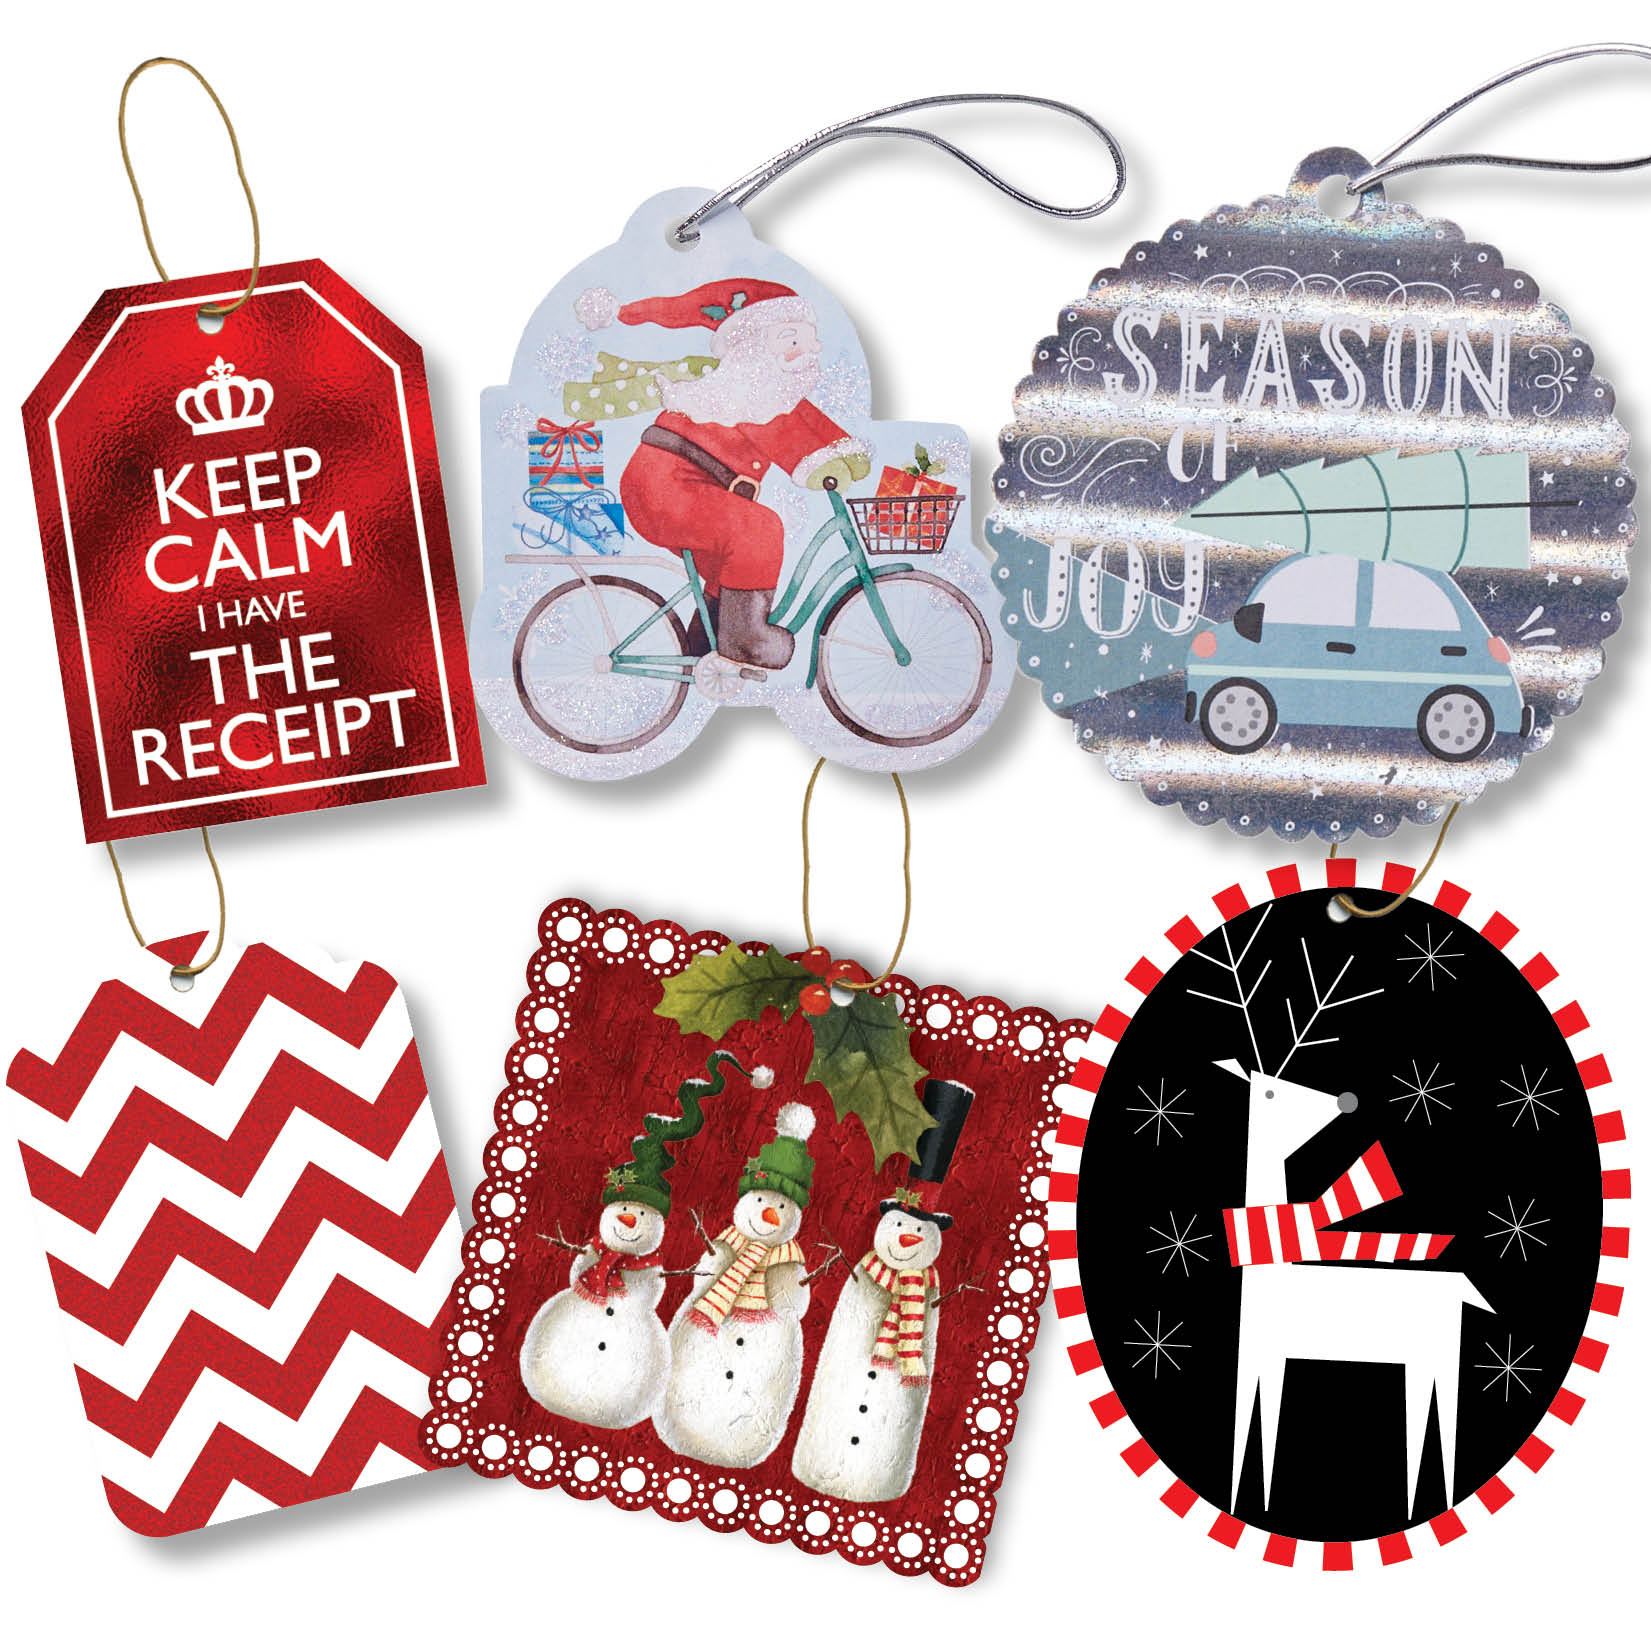 Jillson & Roberts Gift Tag with Tie String Assortment, Christmas Designs (24 Tags)